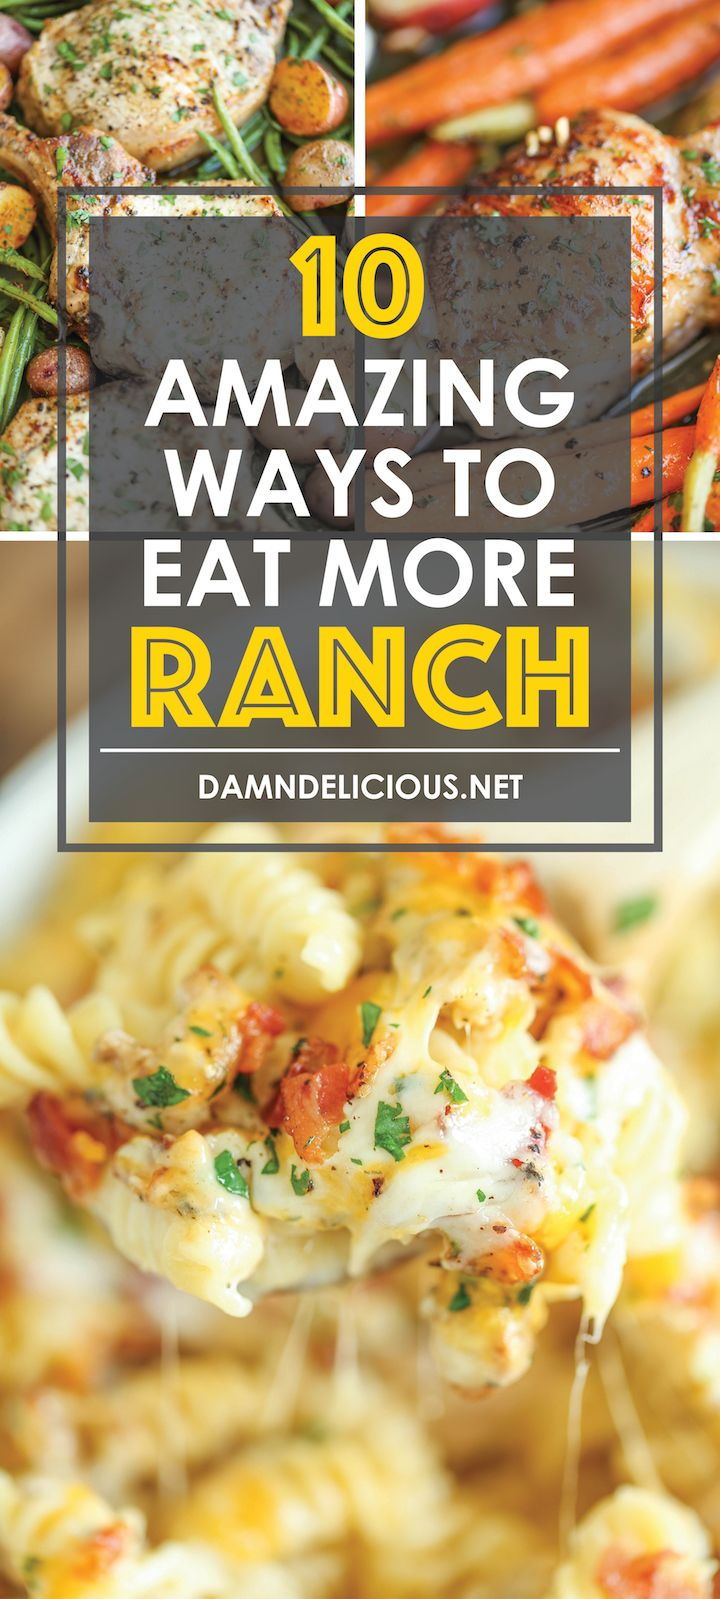 10 Amazing Ways to Eat More Ranch